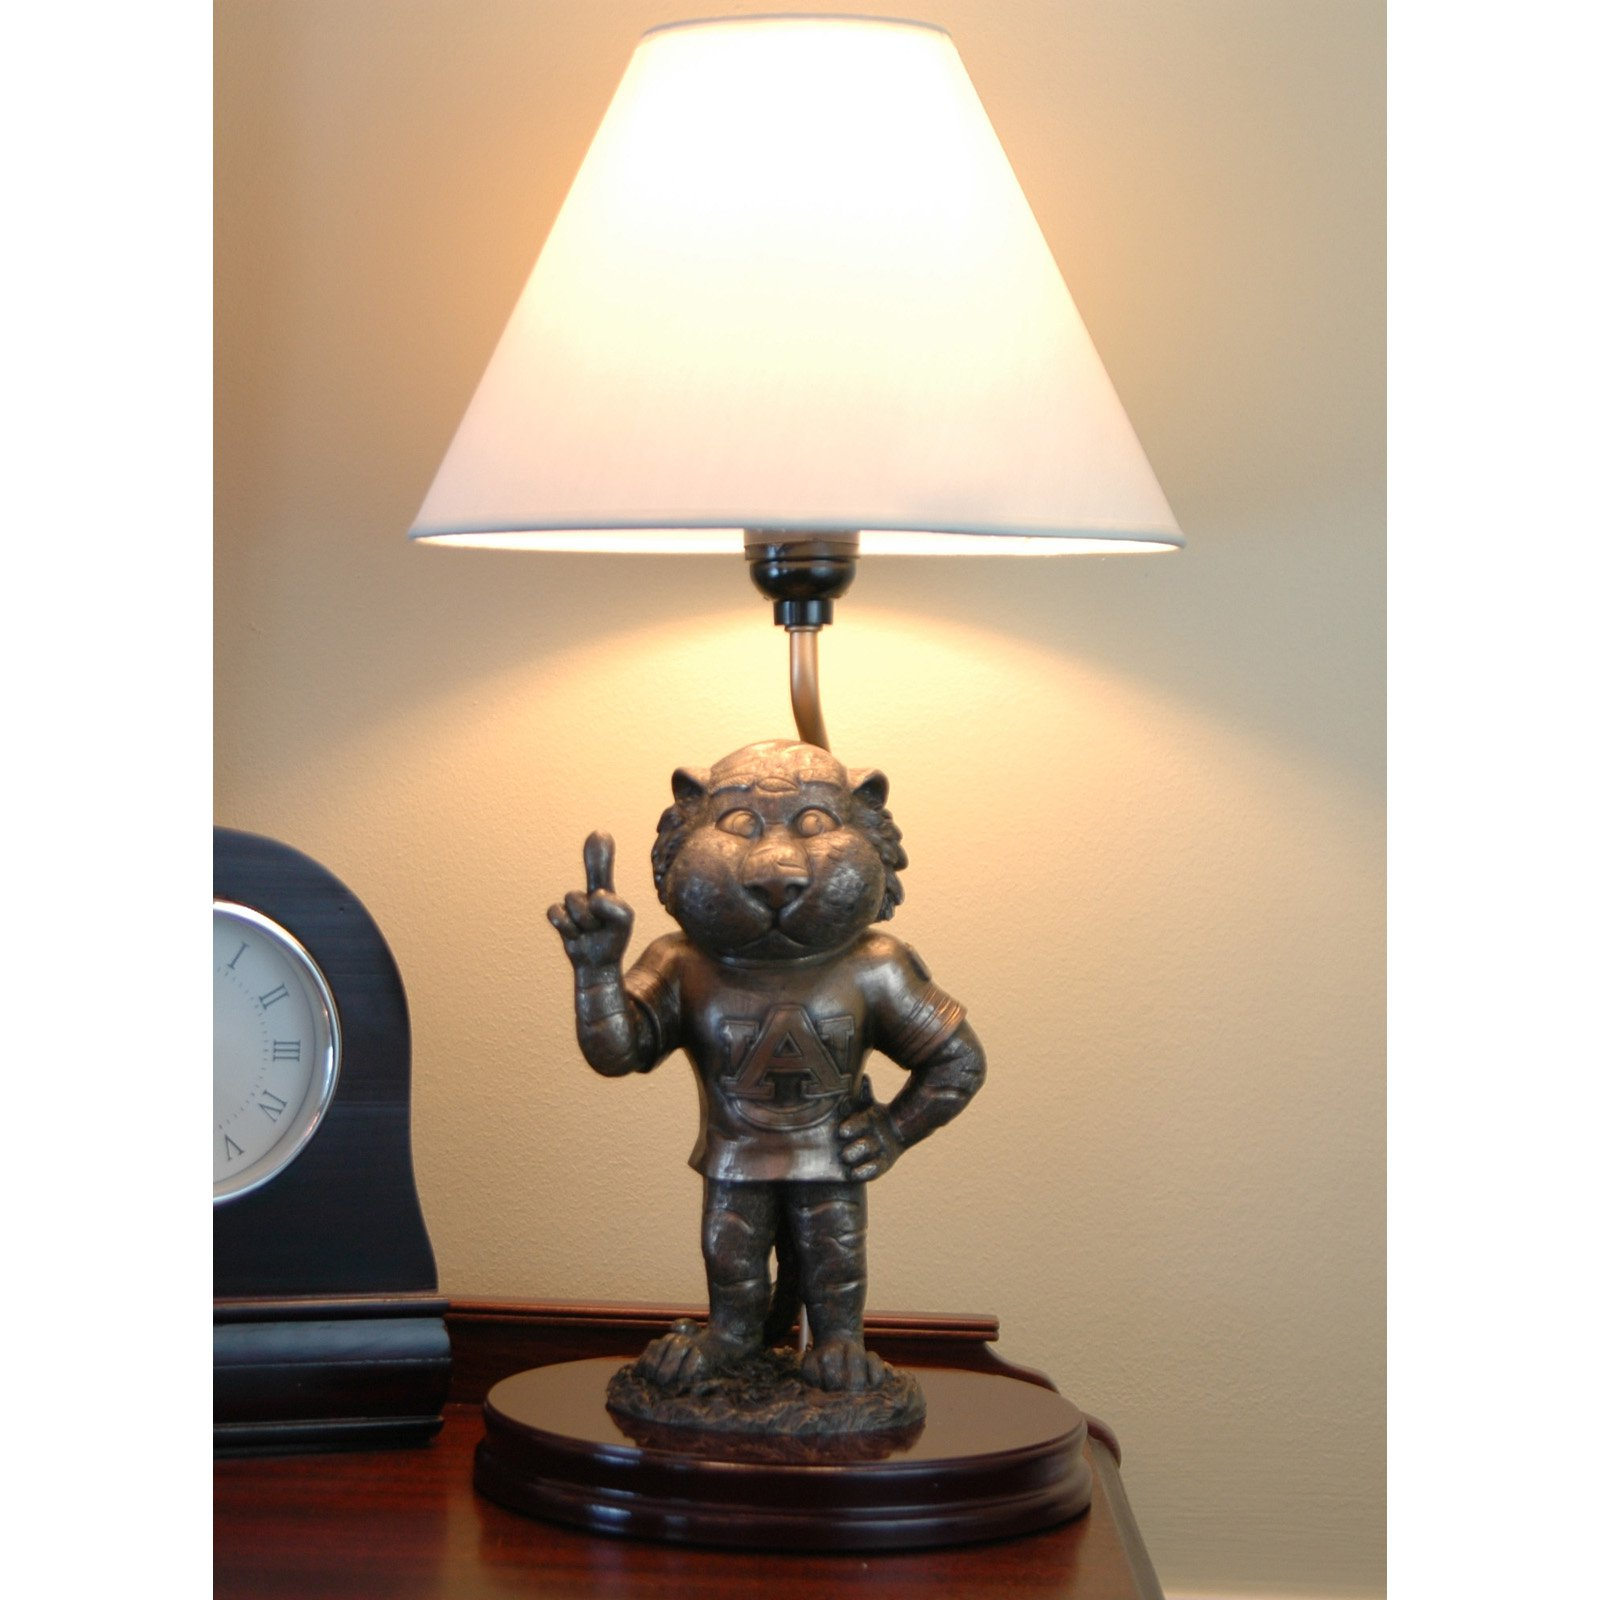 Oxbay Bronze Ncaa Mascot Lamp Lamp Desktop Lamp Novelty Lamp